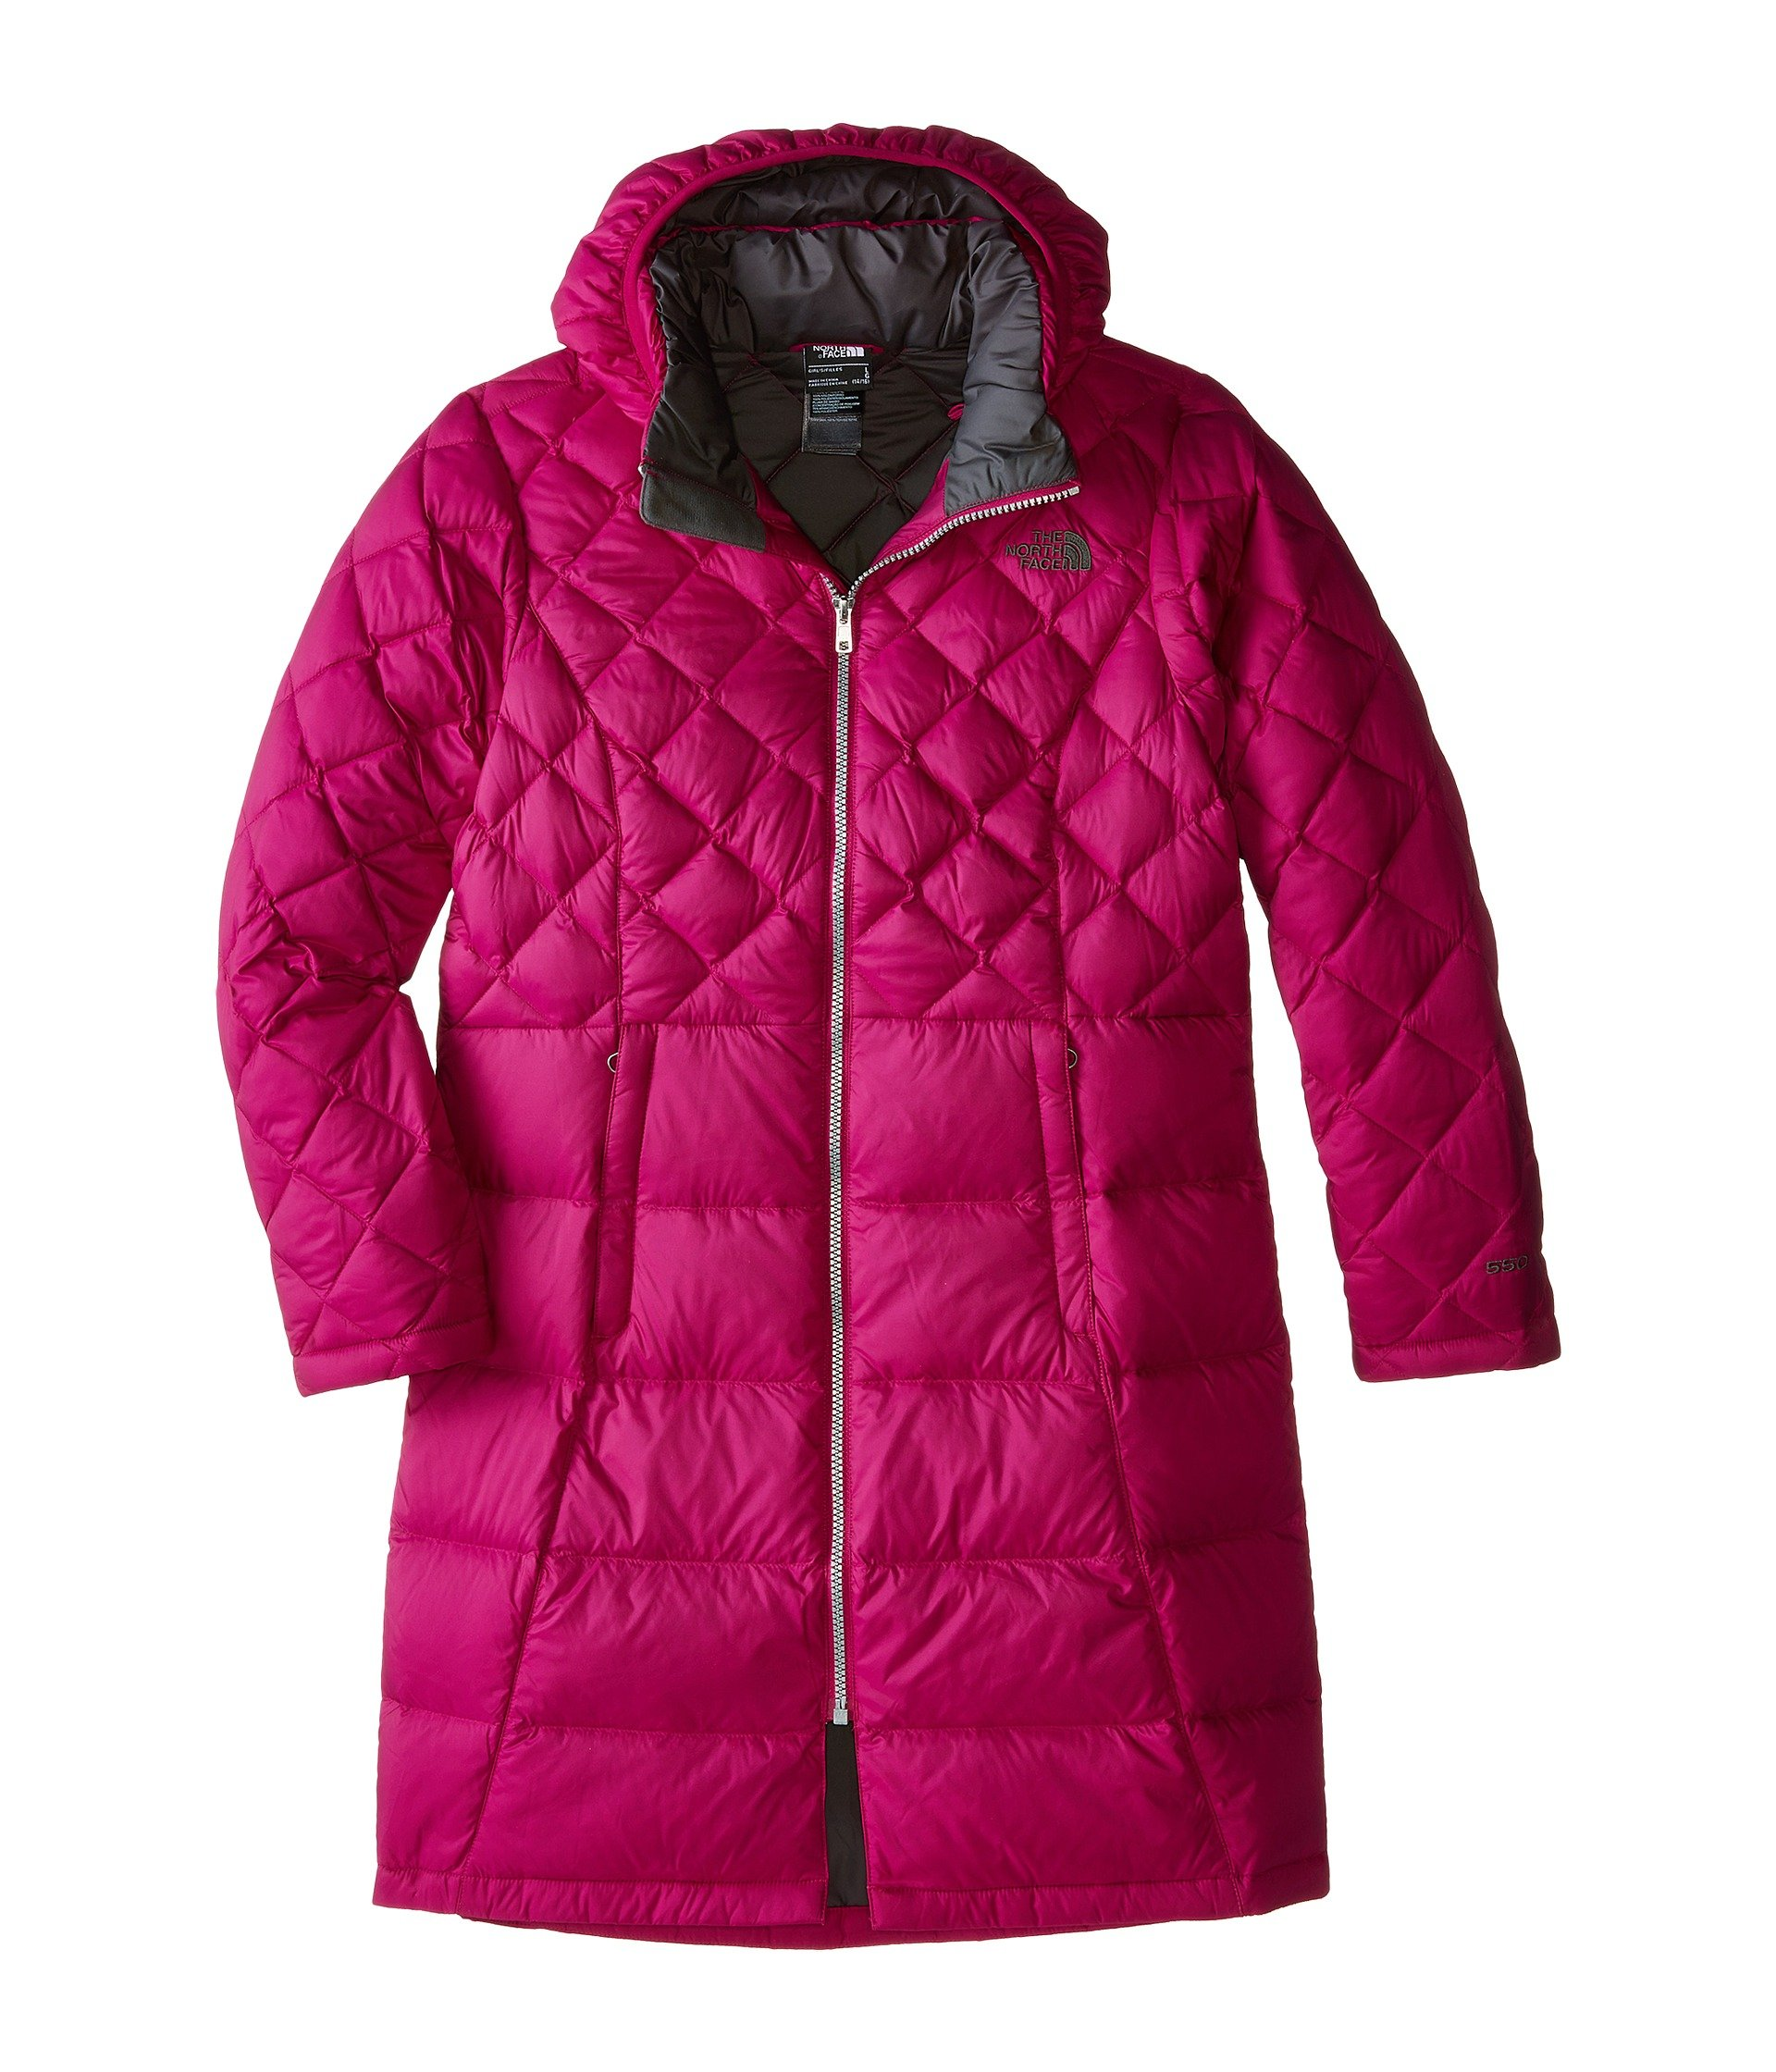 The North Face Kids Girl's Metropolis Down Jacket (Little Kids/Big Kids) Dramatic Plum LG (14-16 Big Kids) by The North Face